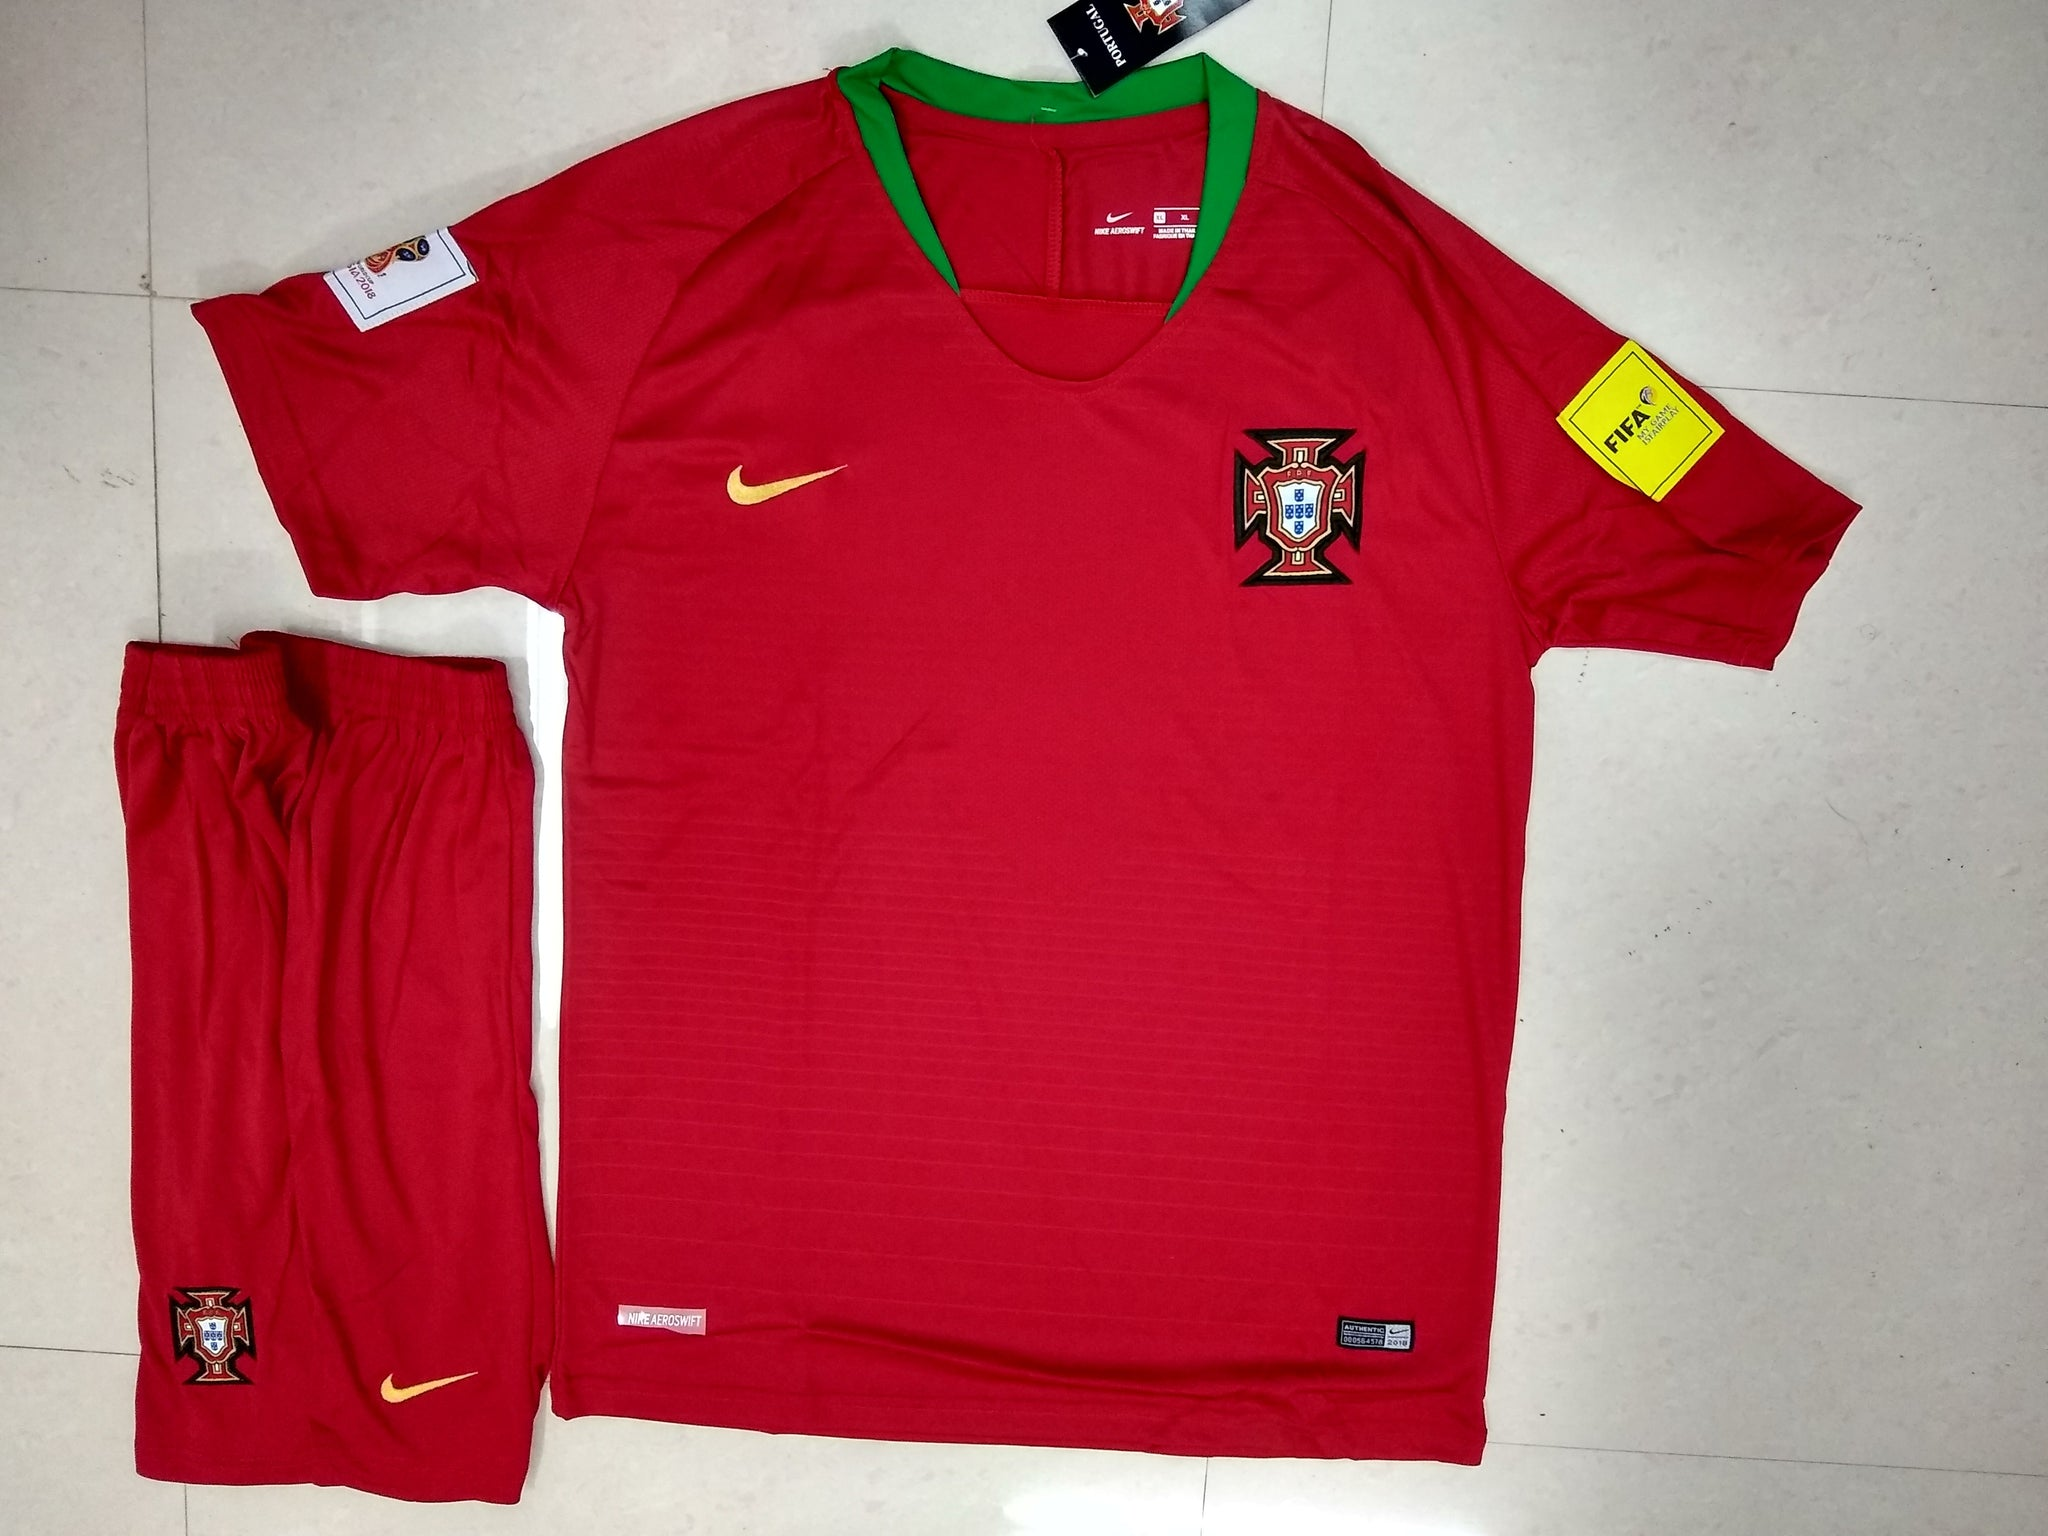 ... Replica Portugal Home Football Jersey   Shorts FIFA World Cup ... 846faa91c